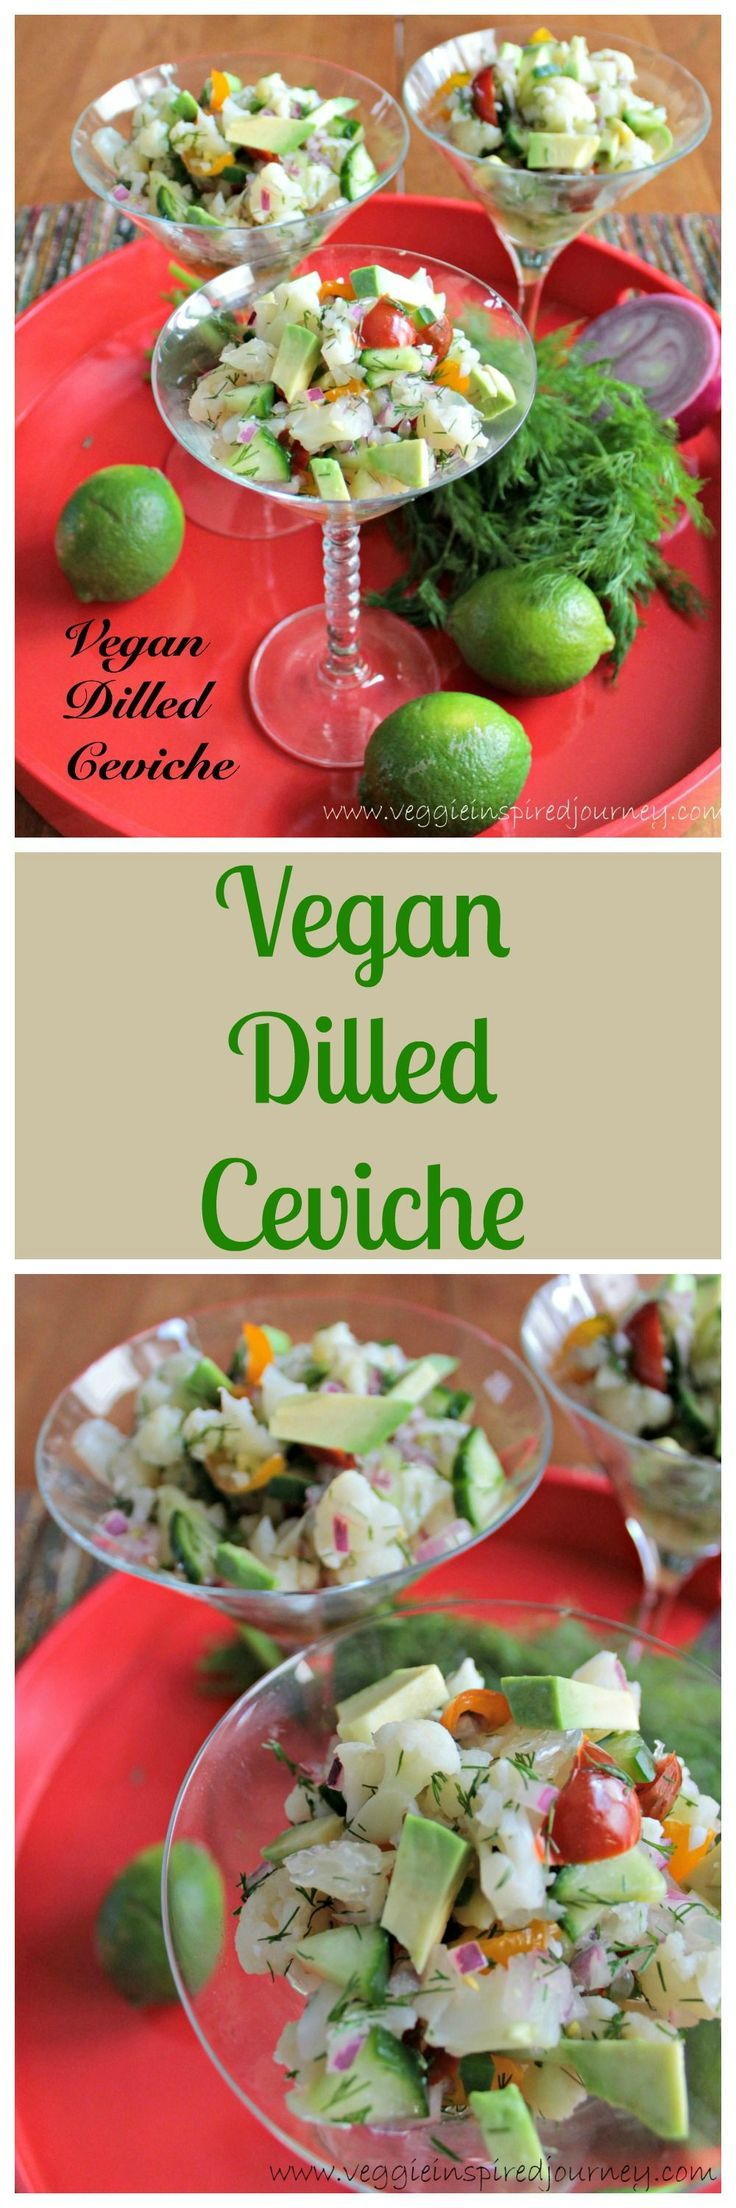 Vegan Dilled Ceviche - this easy plant based ceviche would be a delicious and gorgeous start to any meal!